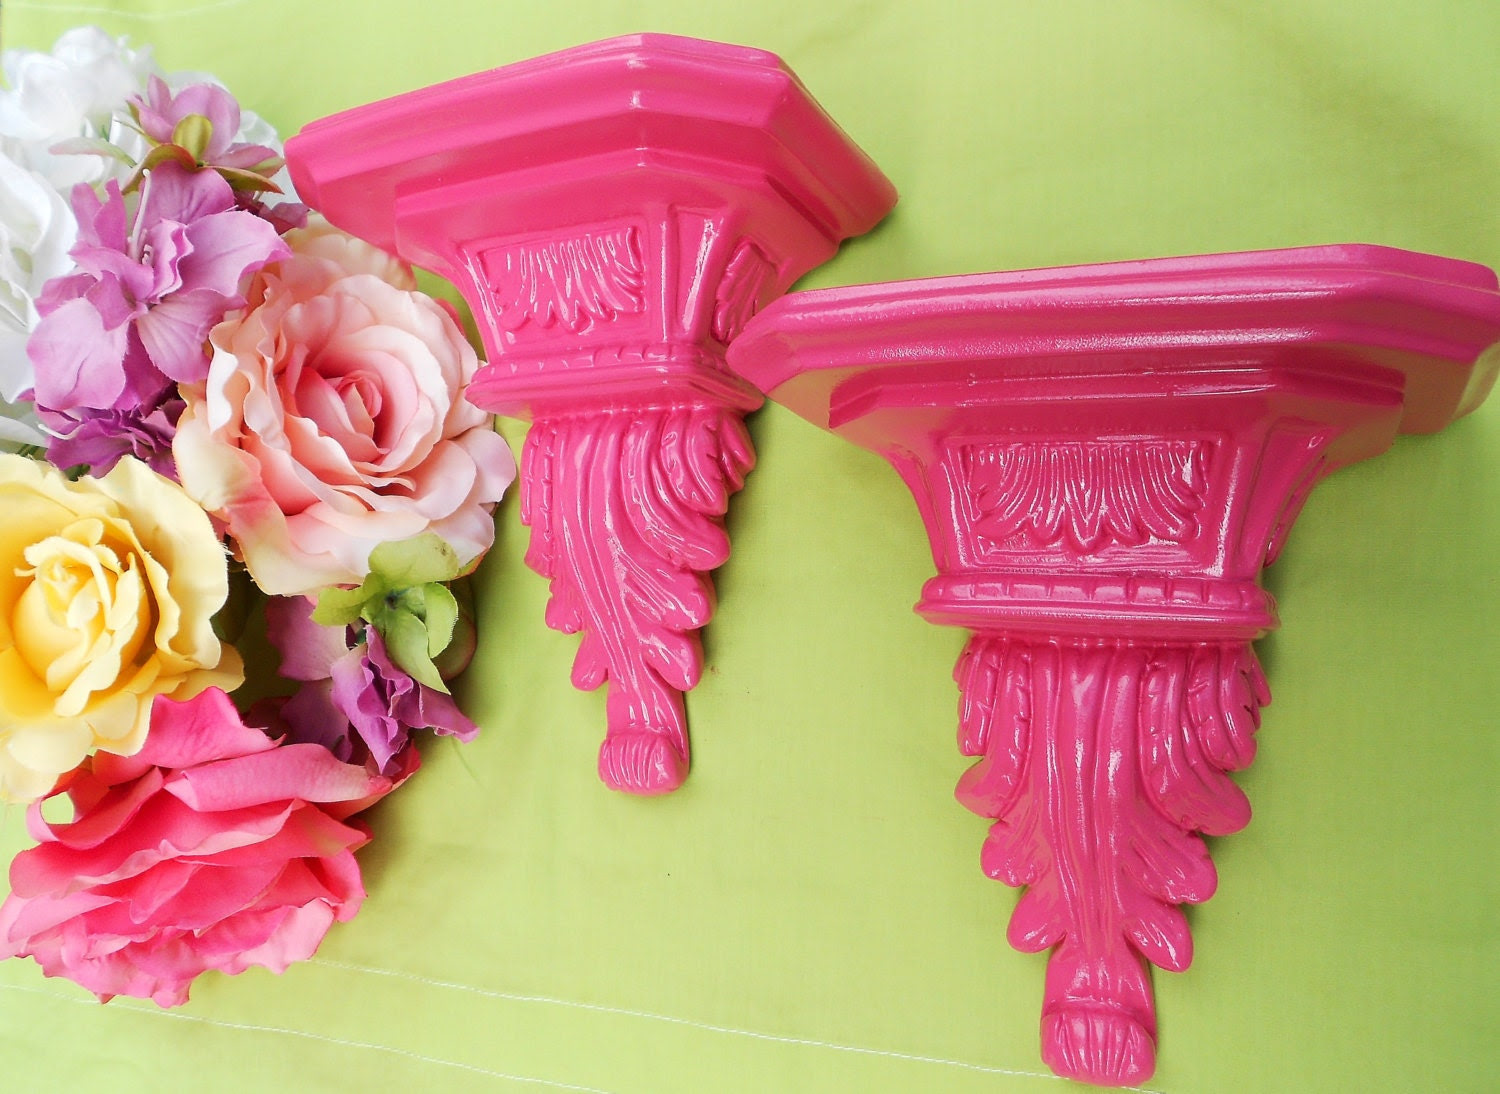 Popular items for hot pink girls room on Etsy